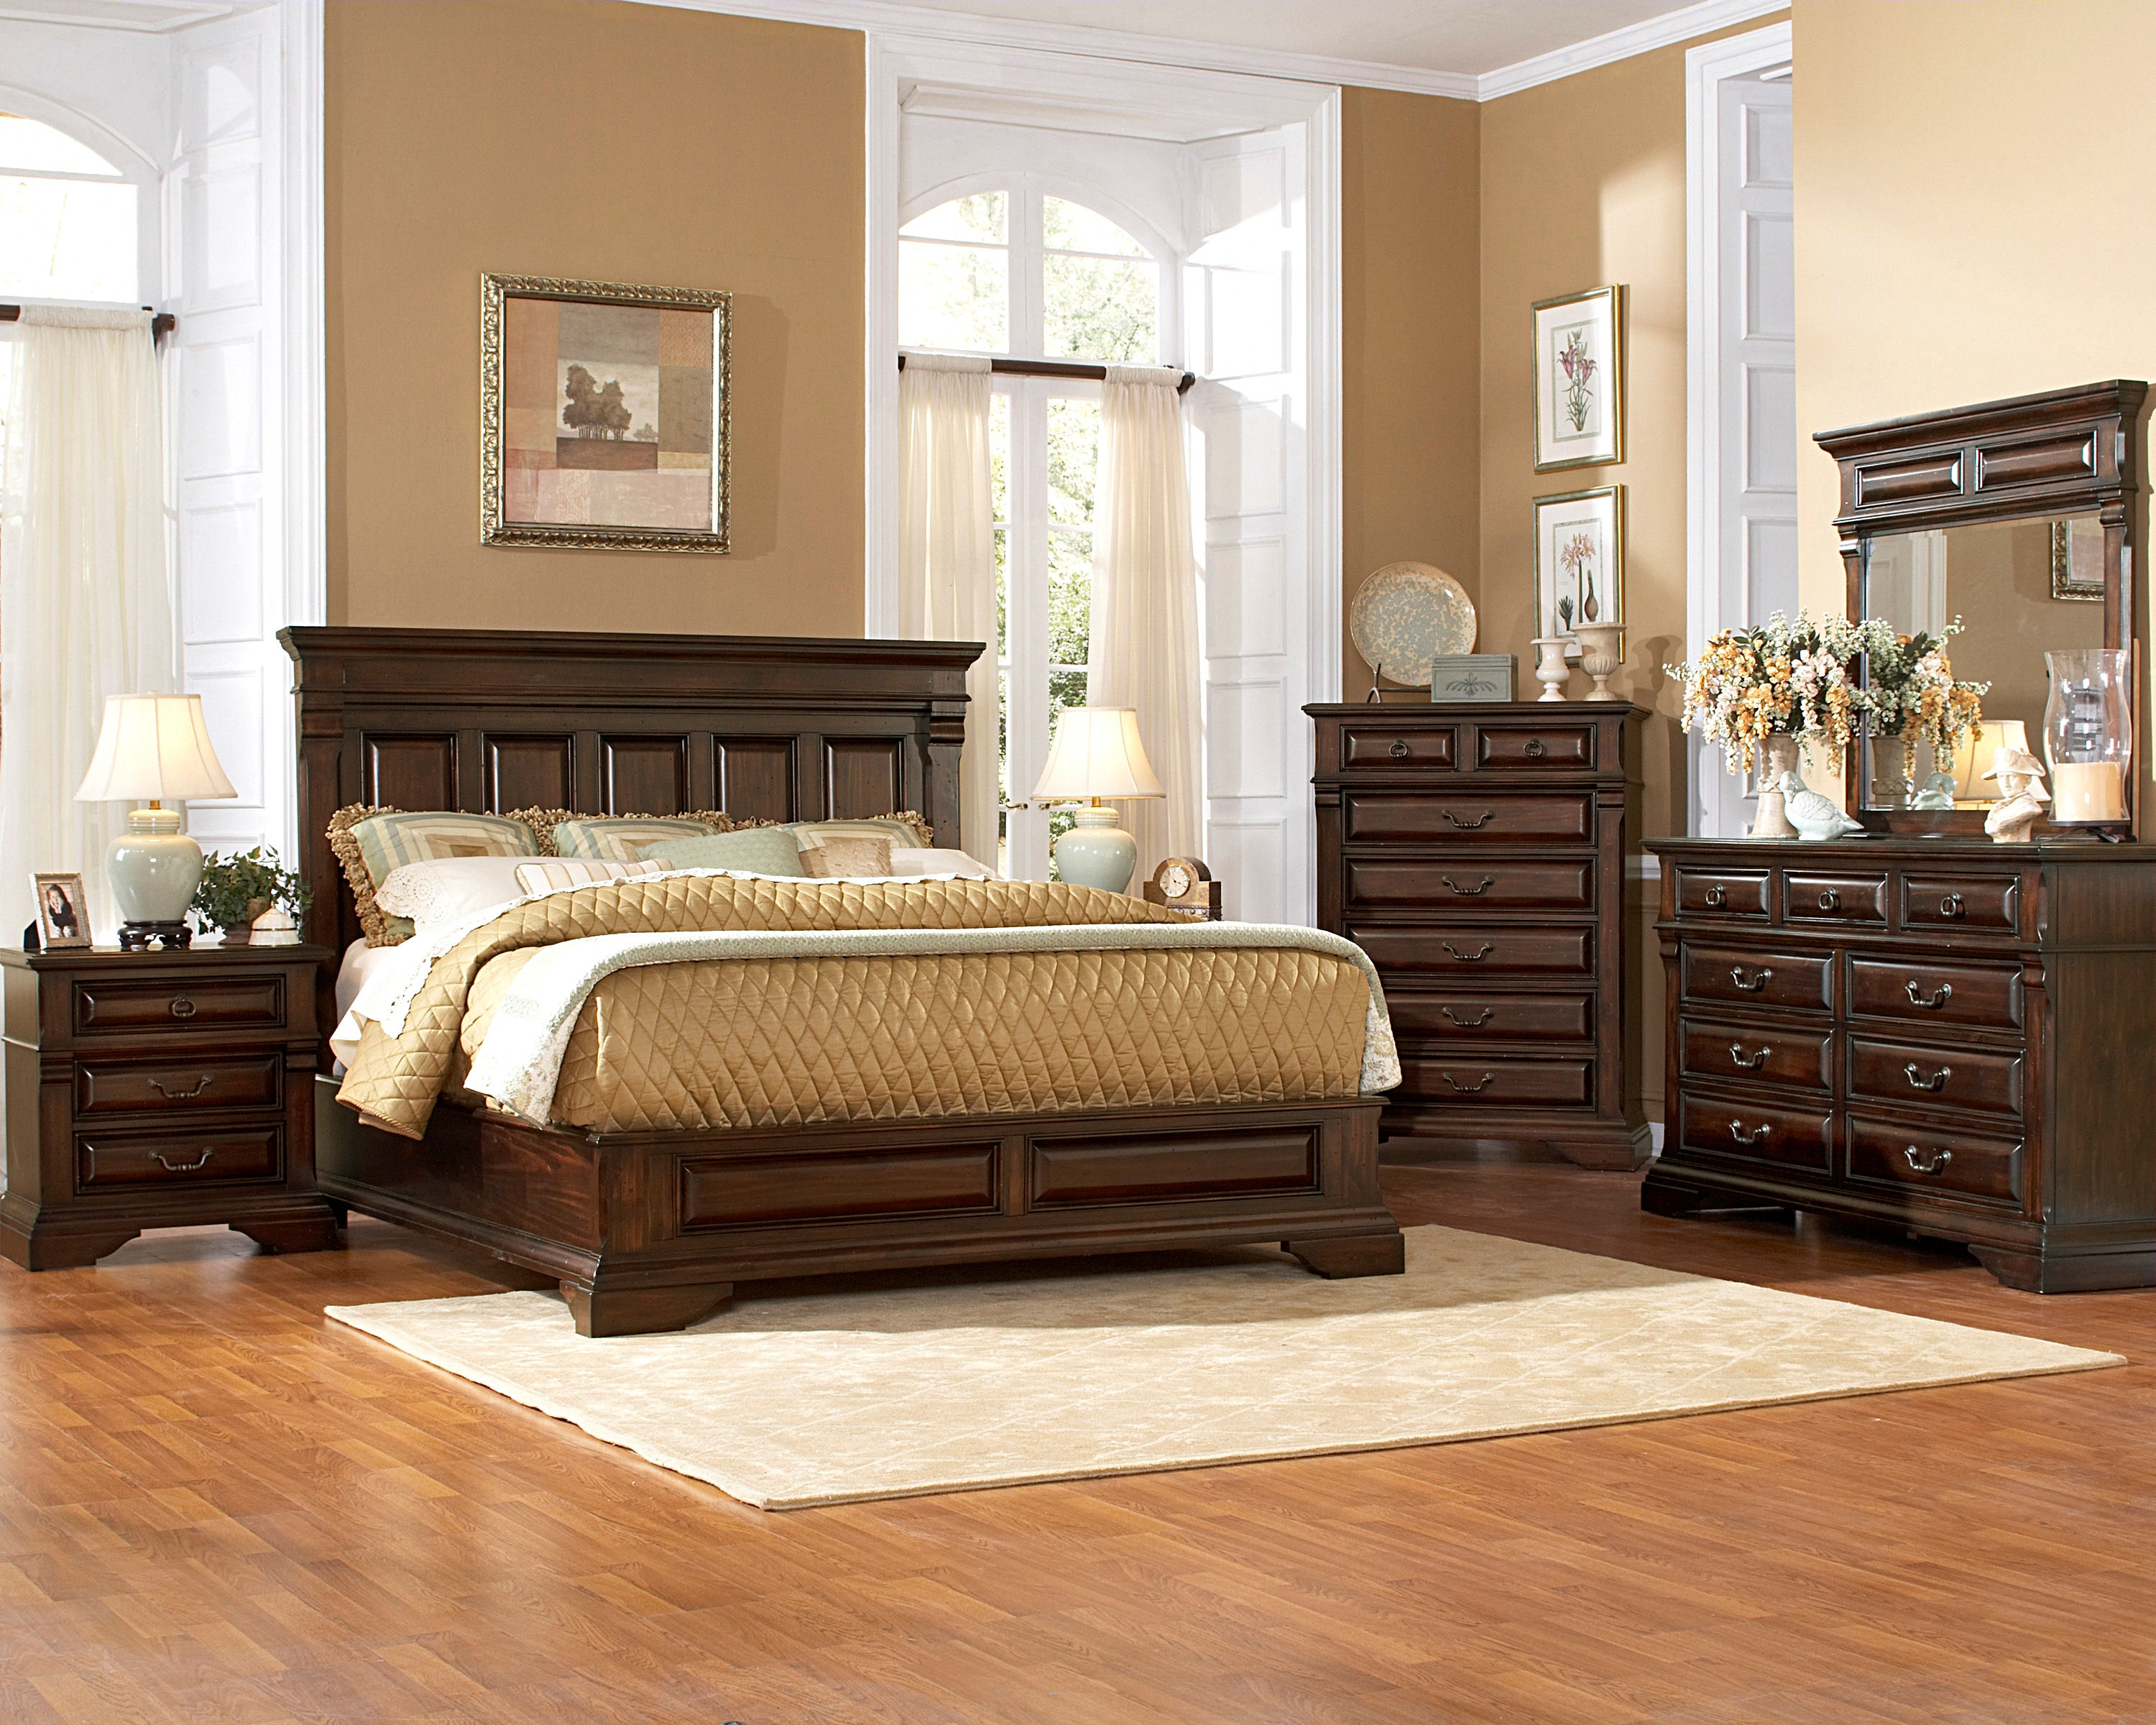 Orchard Park 3 Piece Queen Bedroom Set Source Courts Jamaica Furniture Home Design Ideas And Pictures